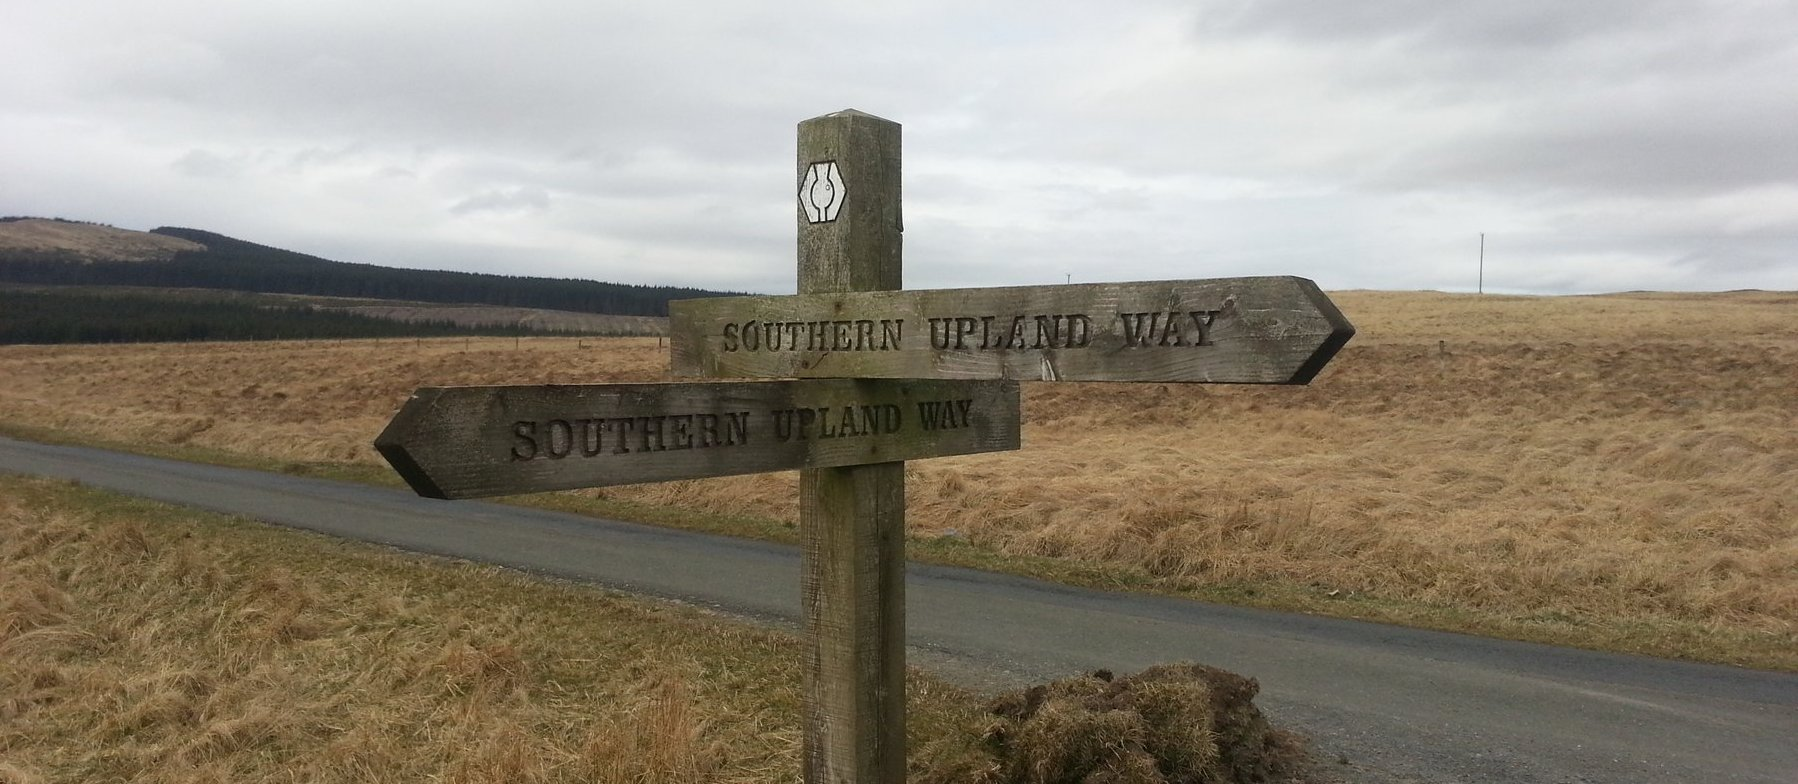 Southern Upland Way sign